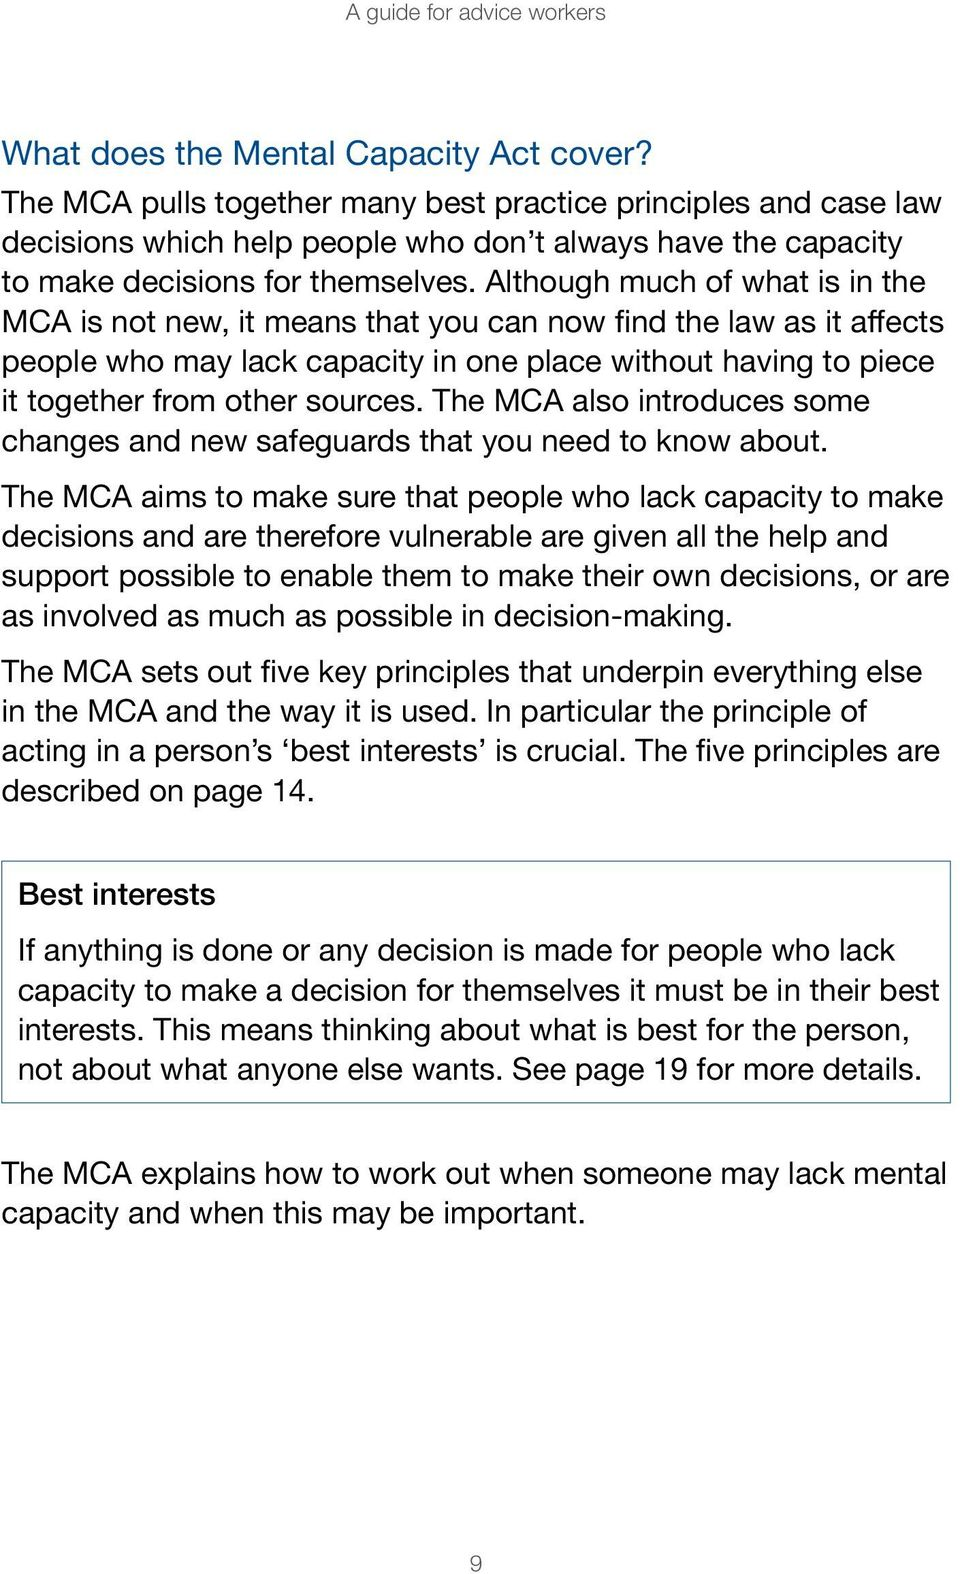 Although much of what is in the MCA is not new, it means that you can now find the law as it affects people who may lack capacity in one place without having to piece it together from other sources.